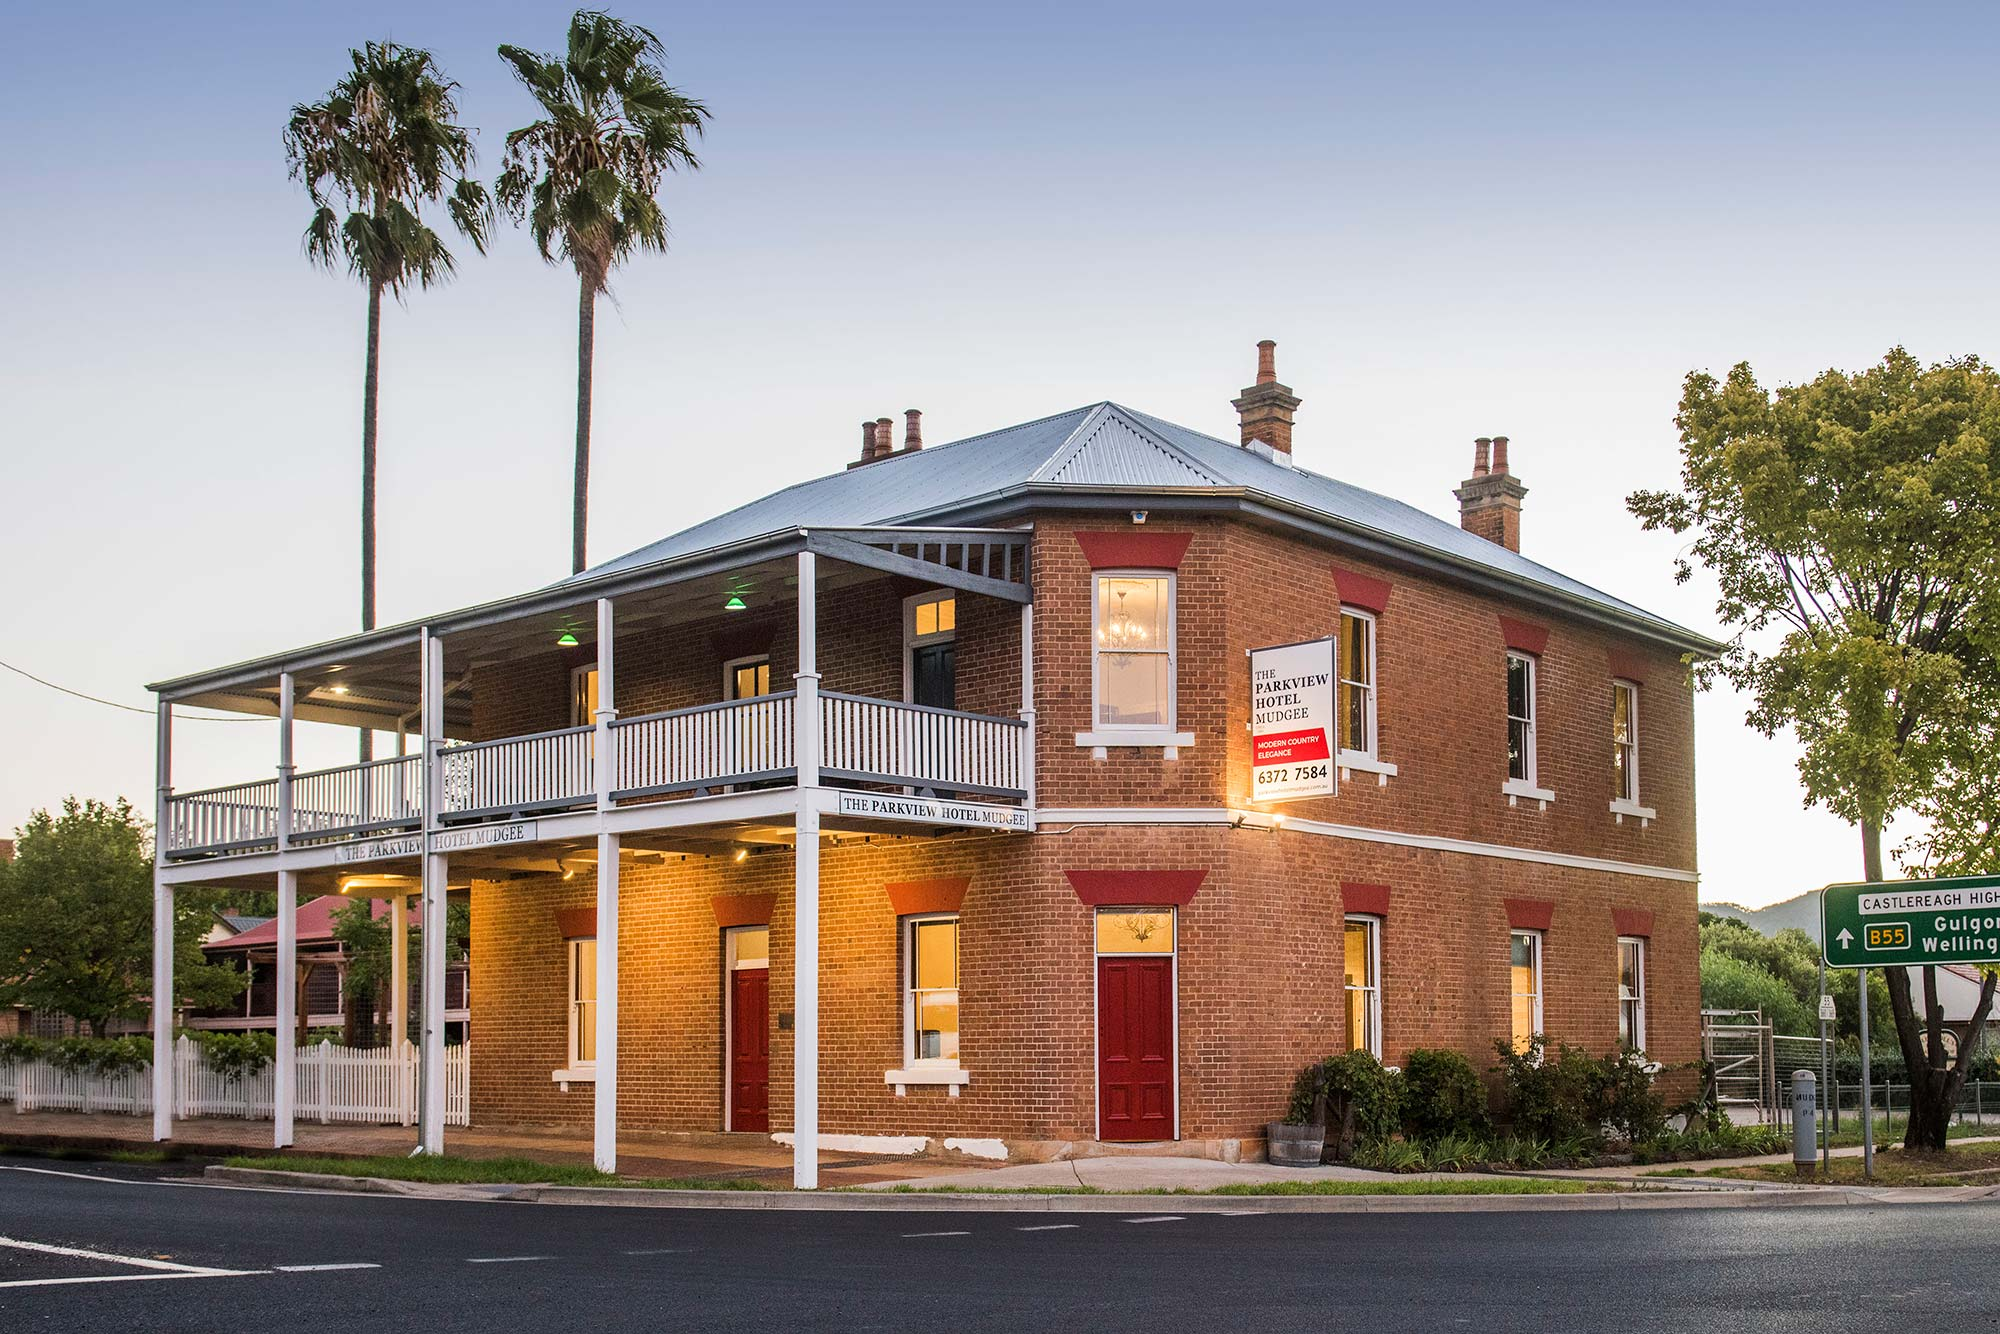 The parkview hotel mudgee modern country elegance for The parkview